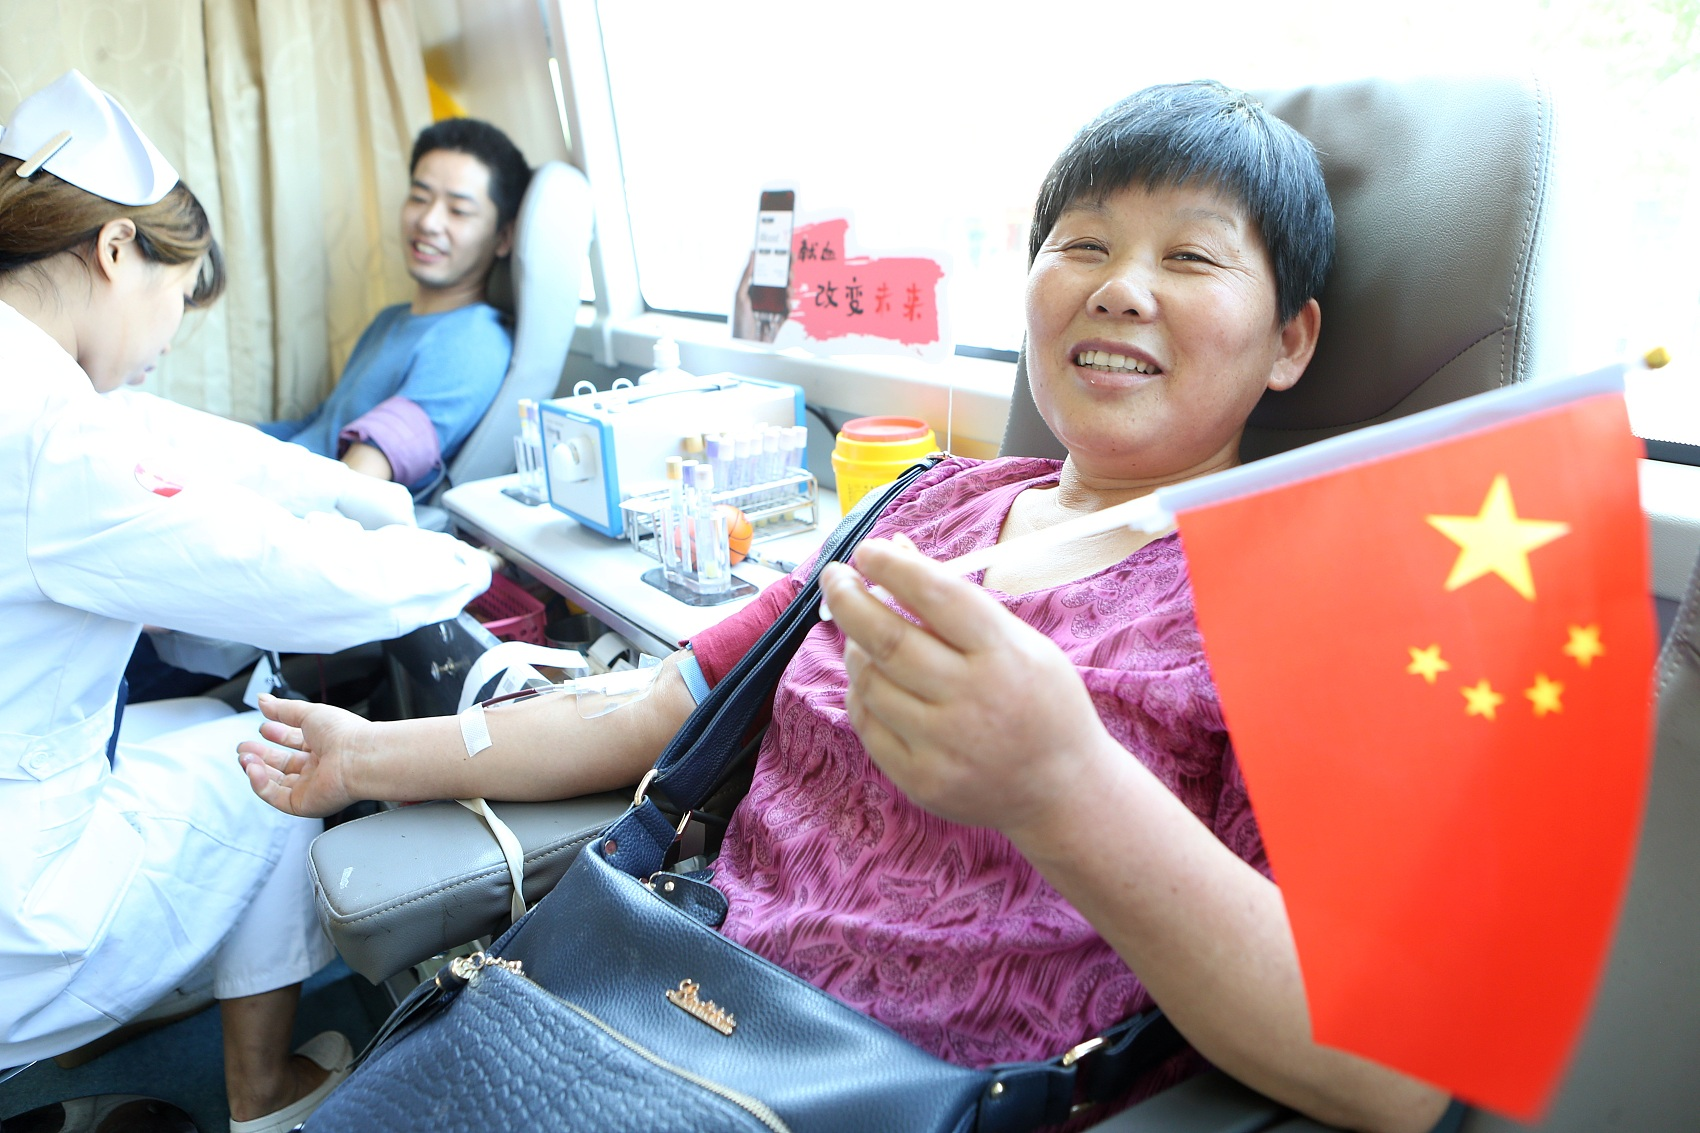 China's voluntary blood donations up 5 pct in Jan.-Sept.